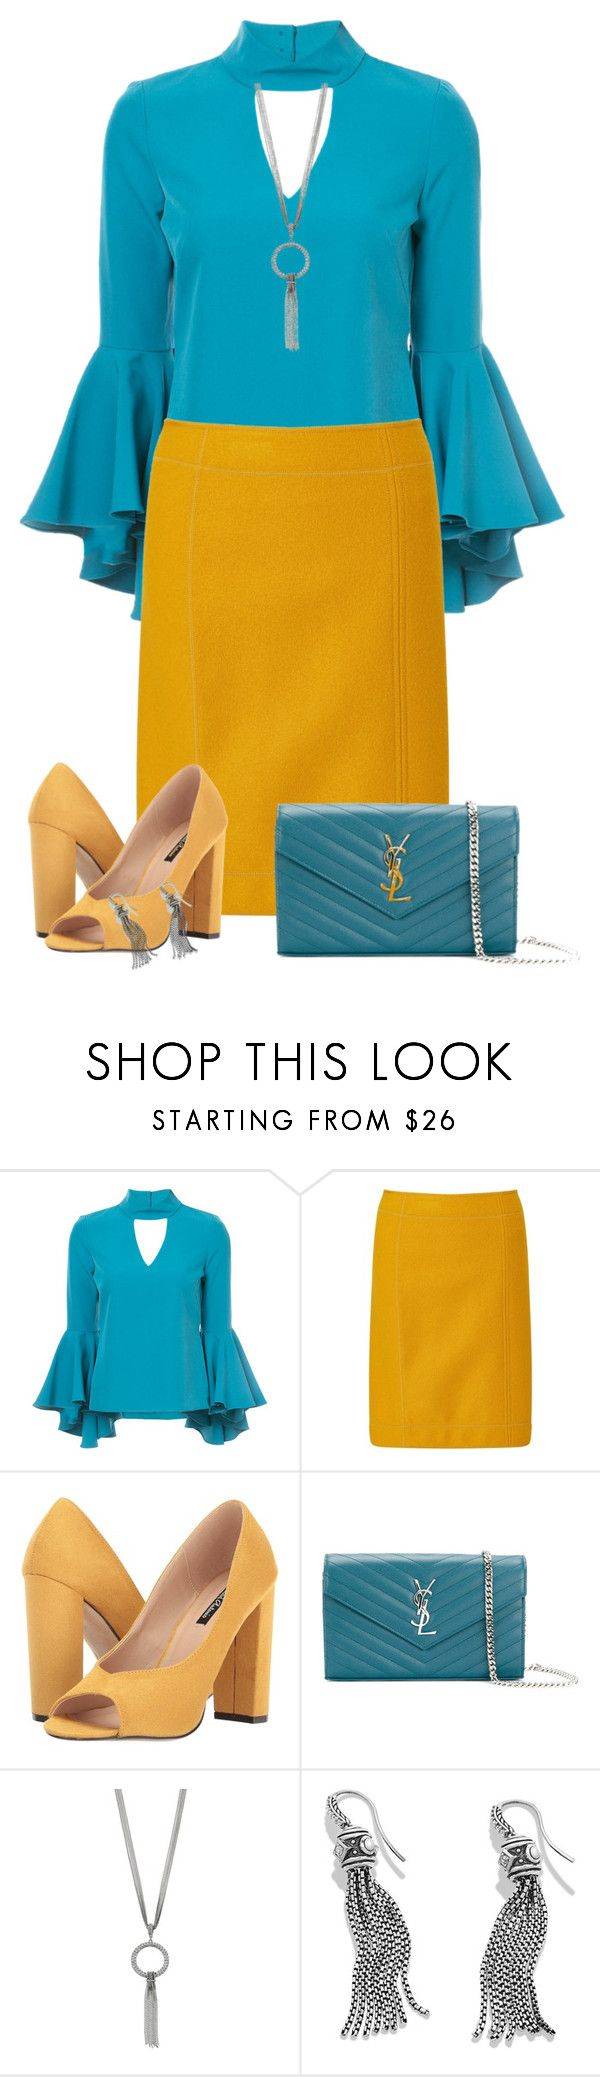 """""""Mustard and Teal"""" by asigworth ❤ liked on Polyvore featuring Milly, MARC CAIN, Michael Antonio, Yves Saint Laurent and David Yurman"""